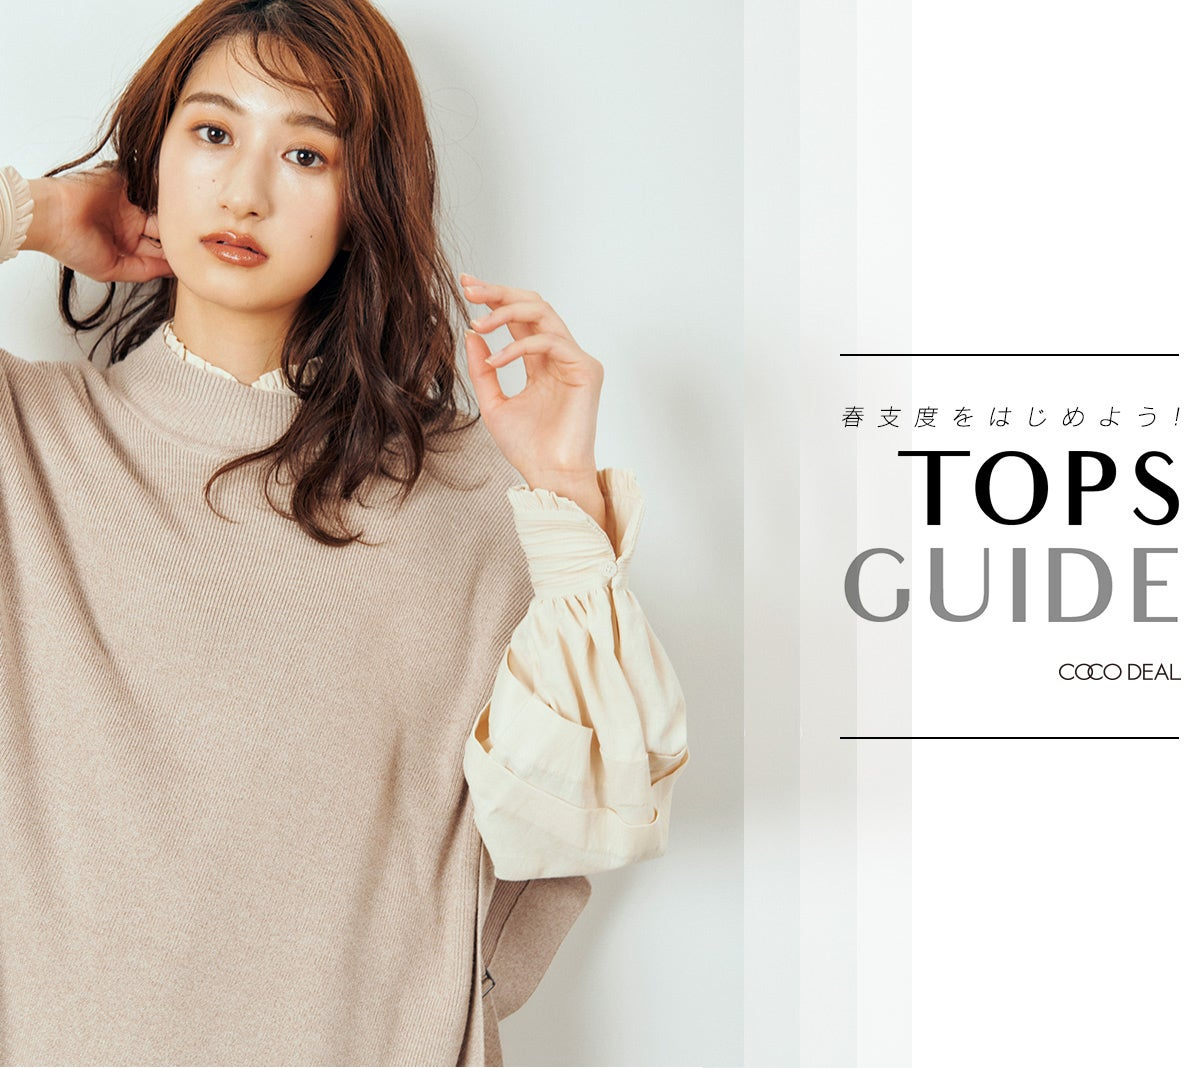 TOPS GUIDE